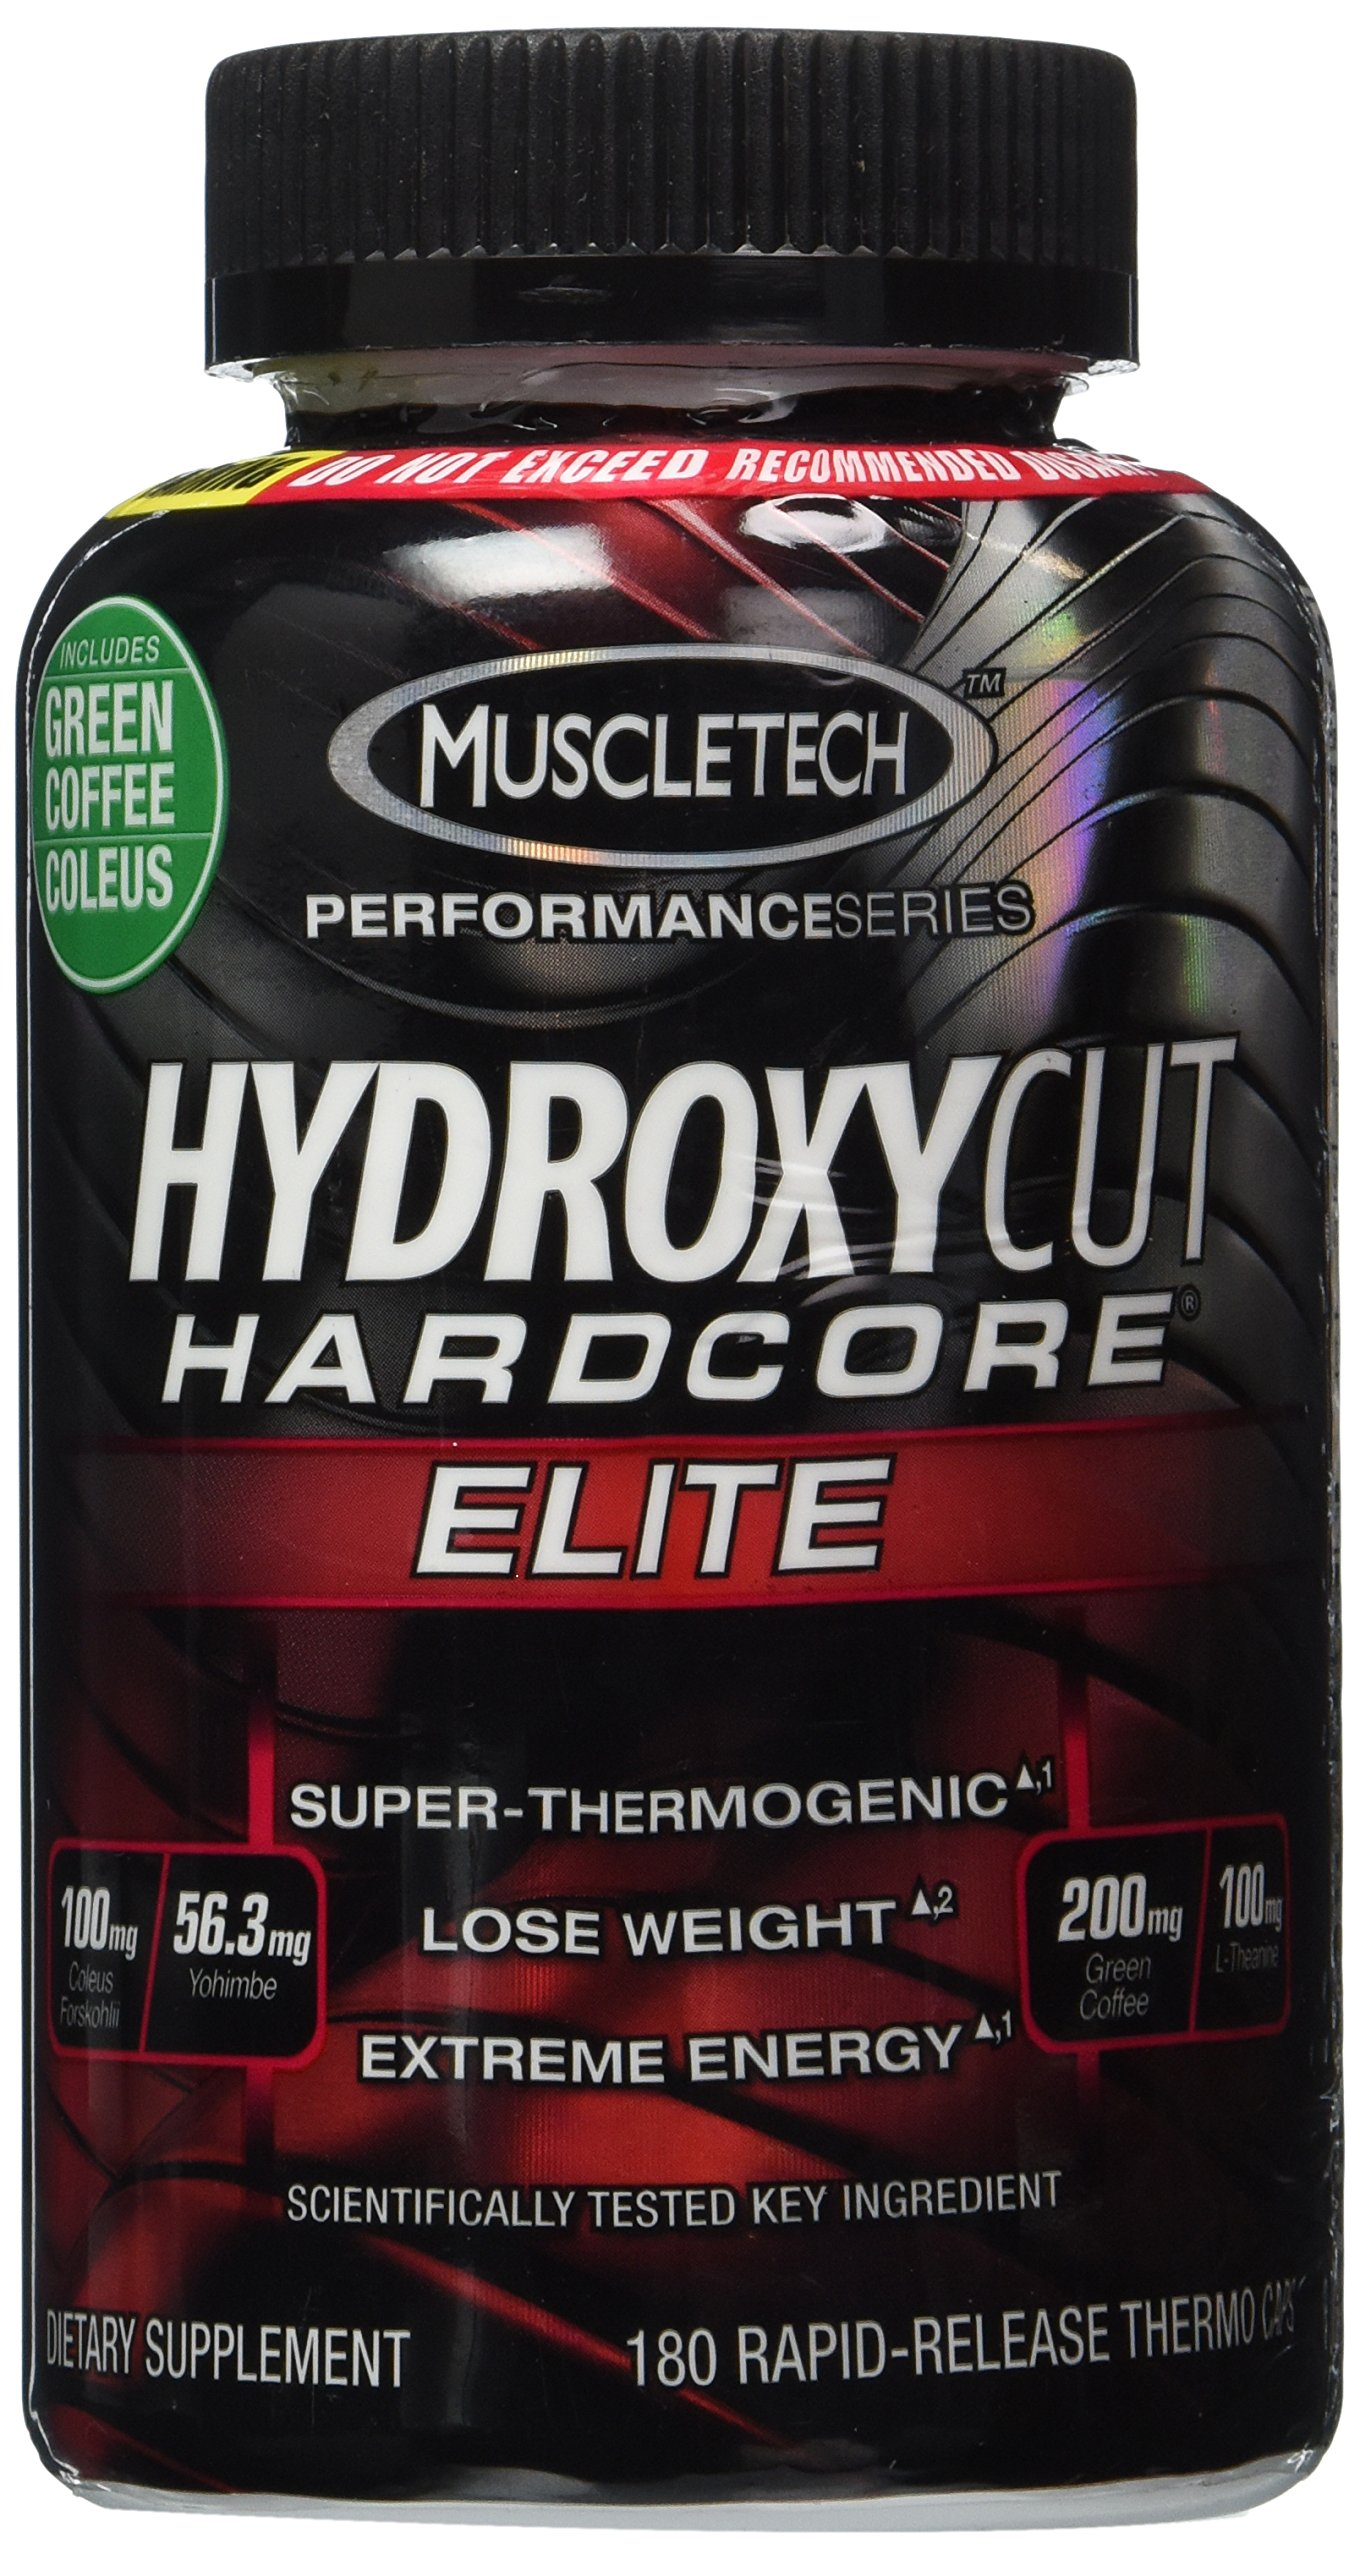 Hydroxycut Hardcore Elite - Svetol Green Coffee Bean Extract Formula, 180 Rapid-Release Thermo Caps